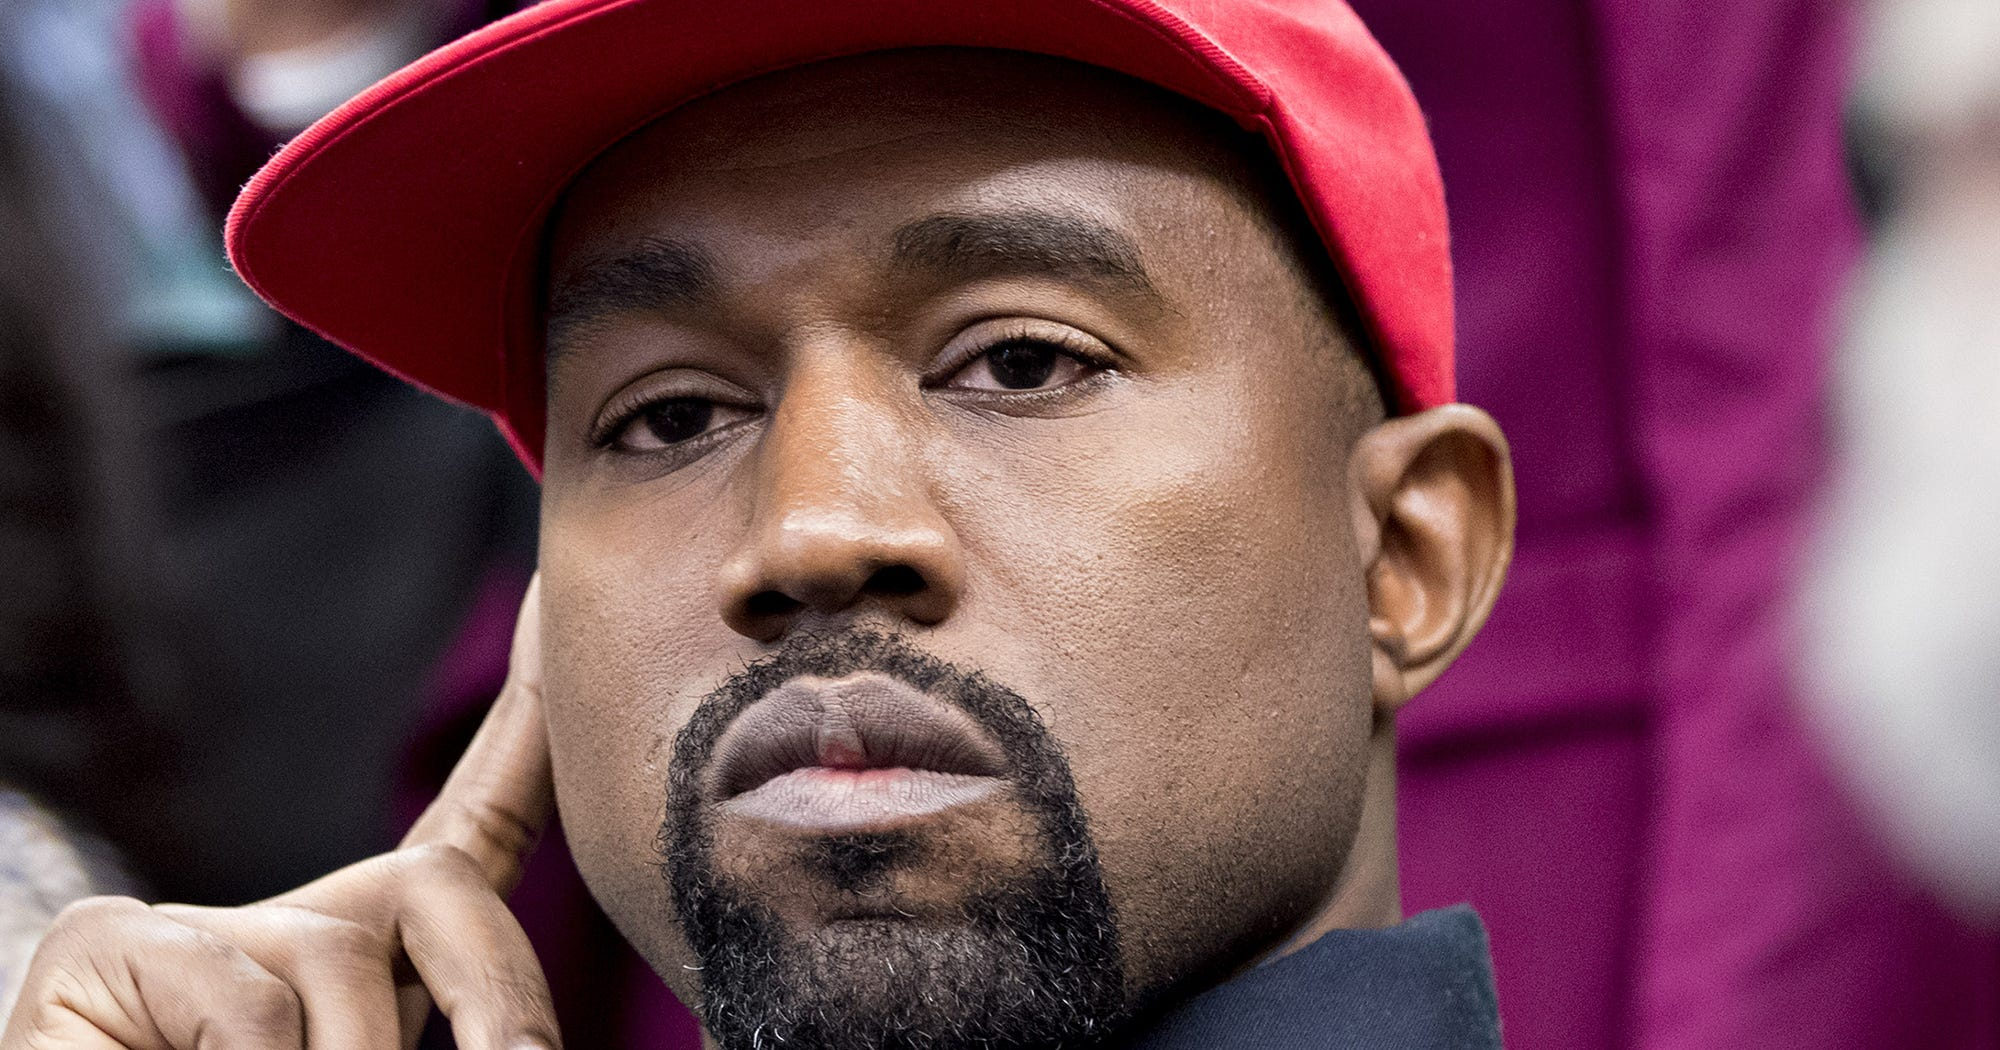 Kanye West Says He Was Misdiagnosed With Bipolar Disorder